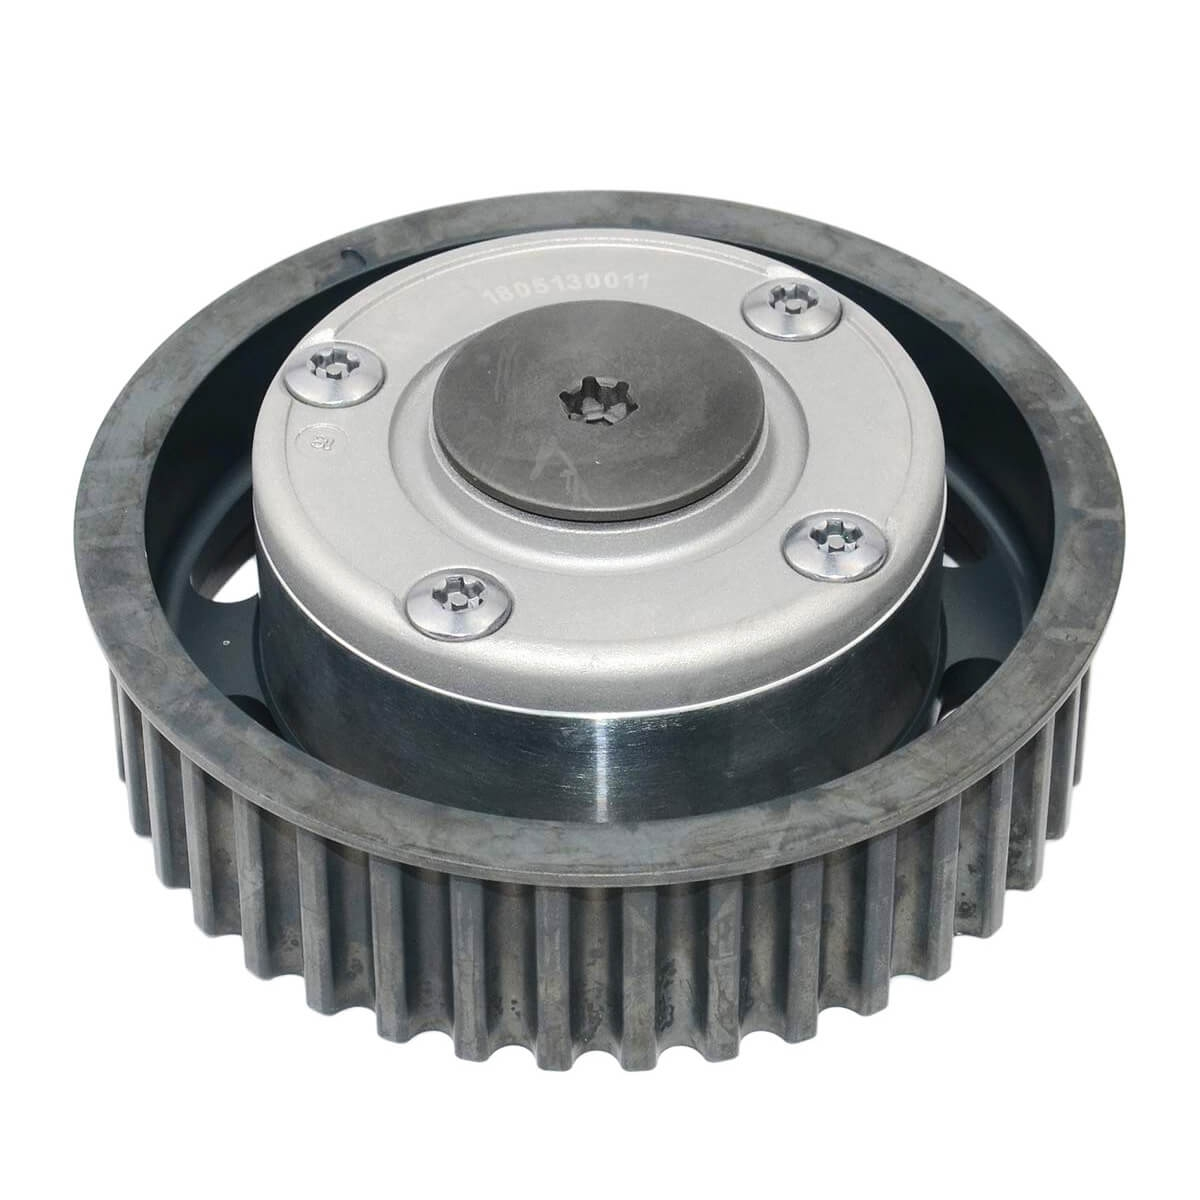 HYUNDAI H-1 Cam Dephaser Pulley